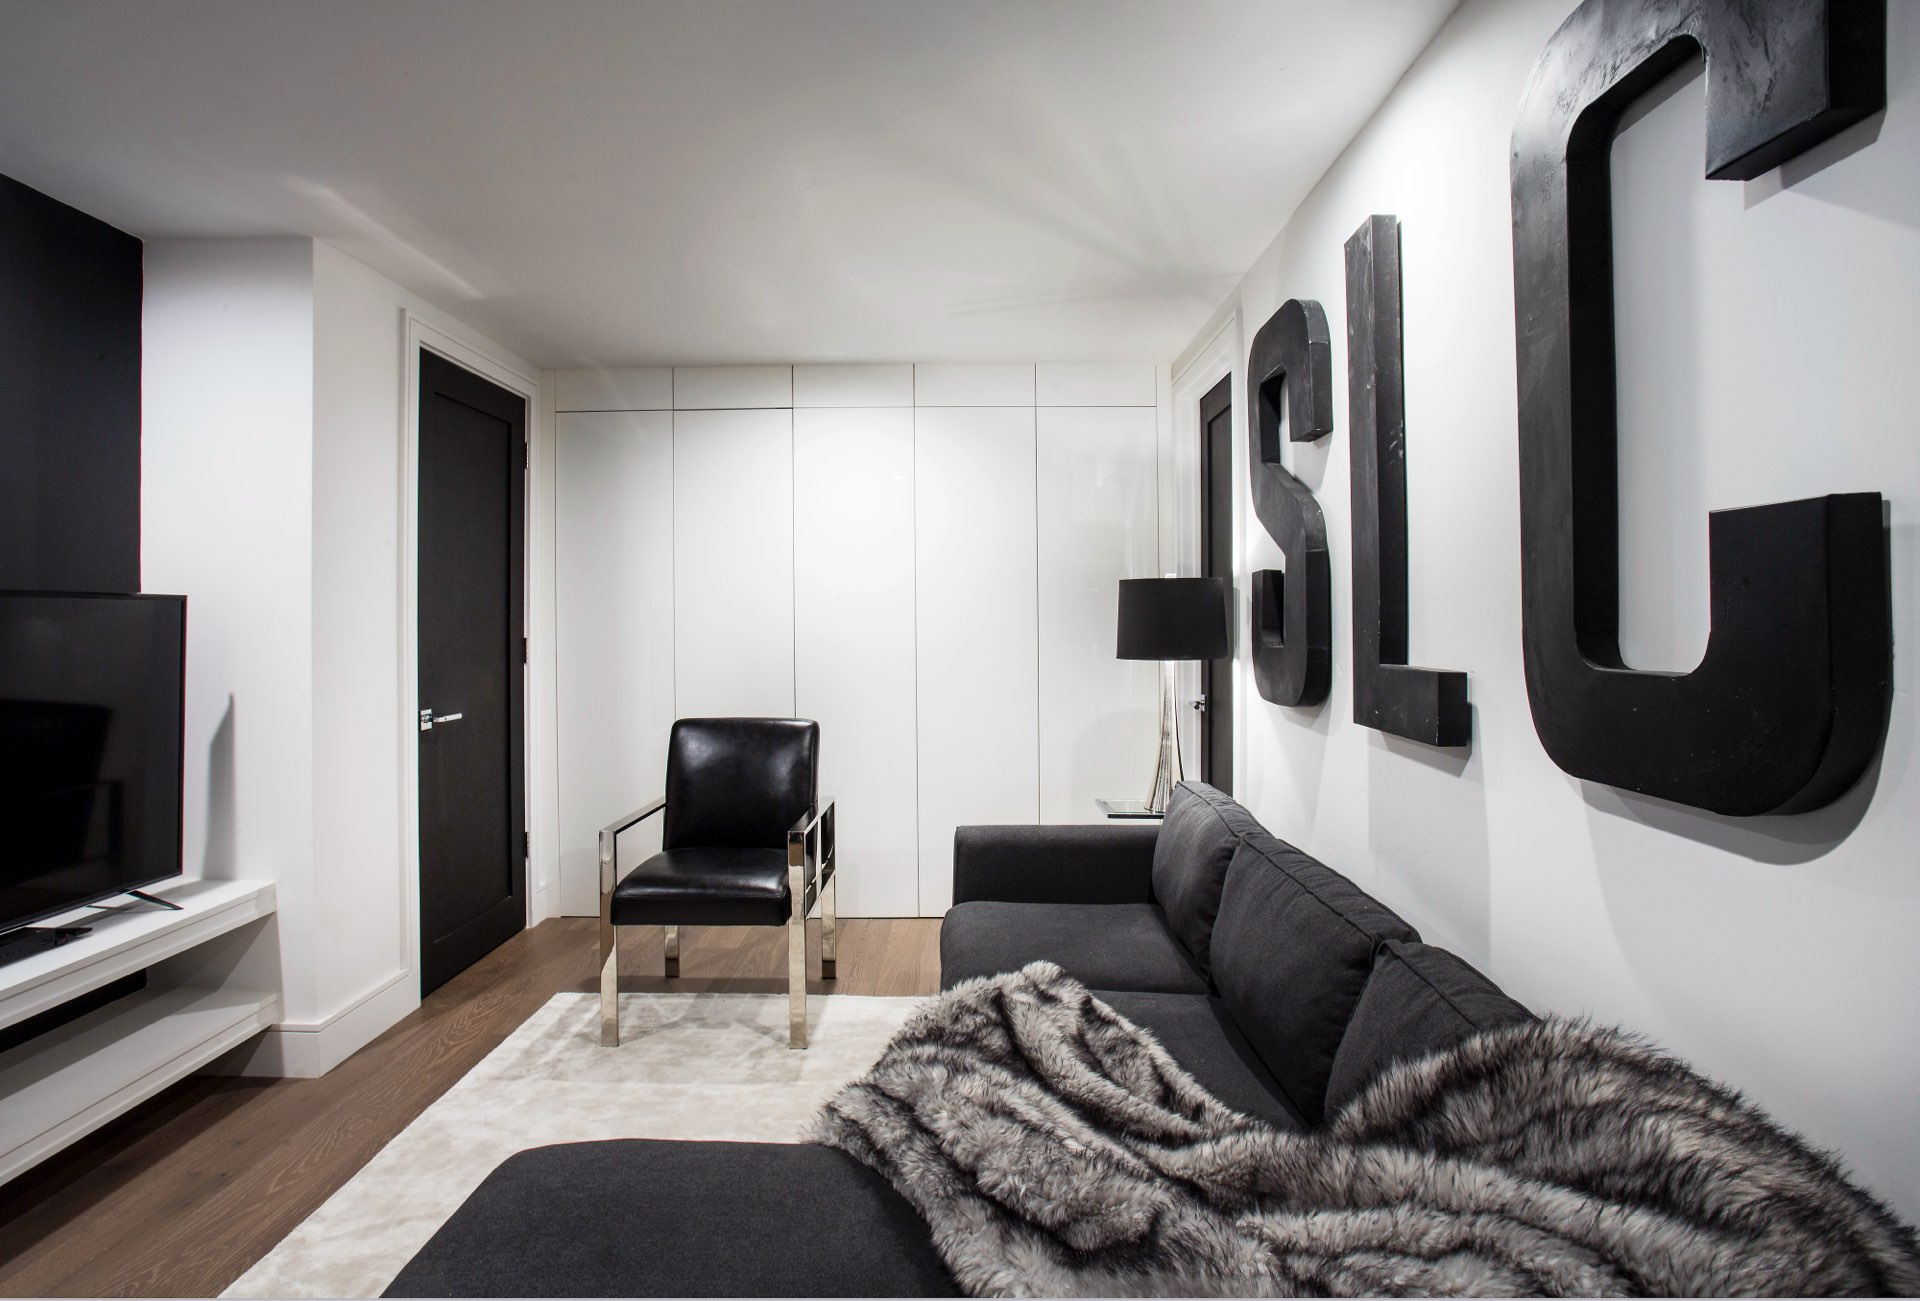 Basement, House 970, residential architectural design by Elliott Workgroup